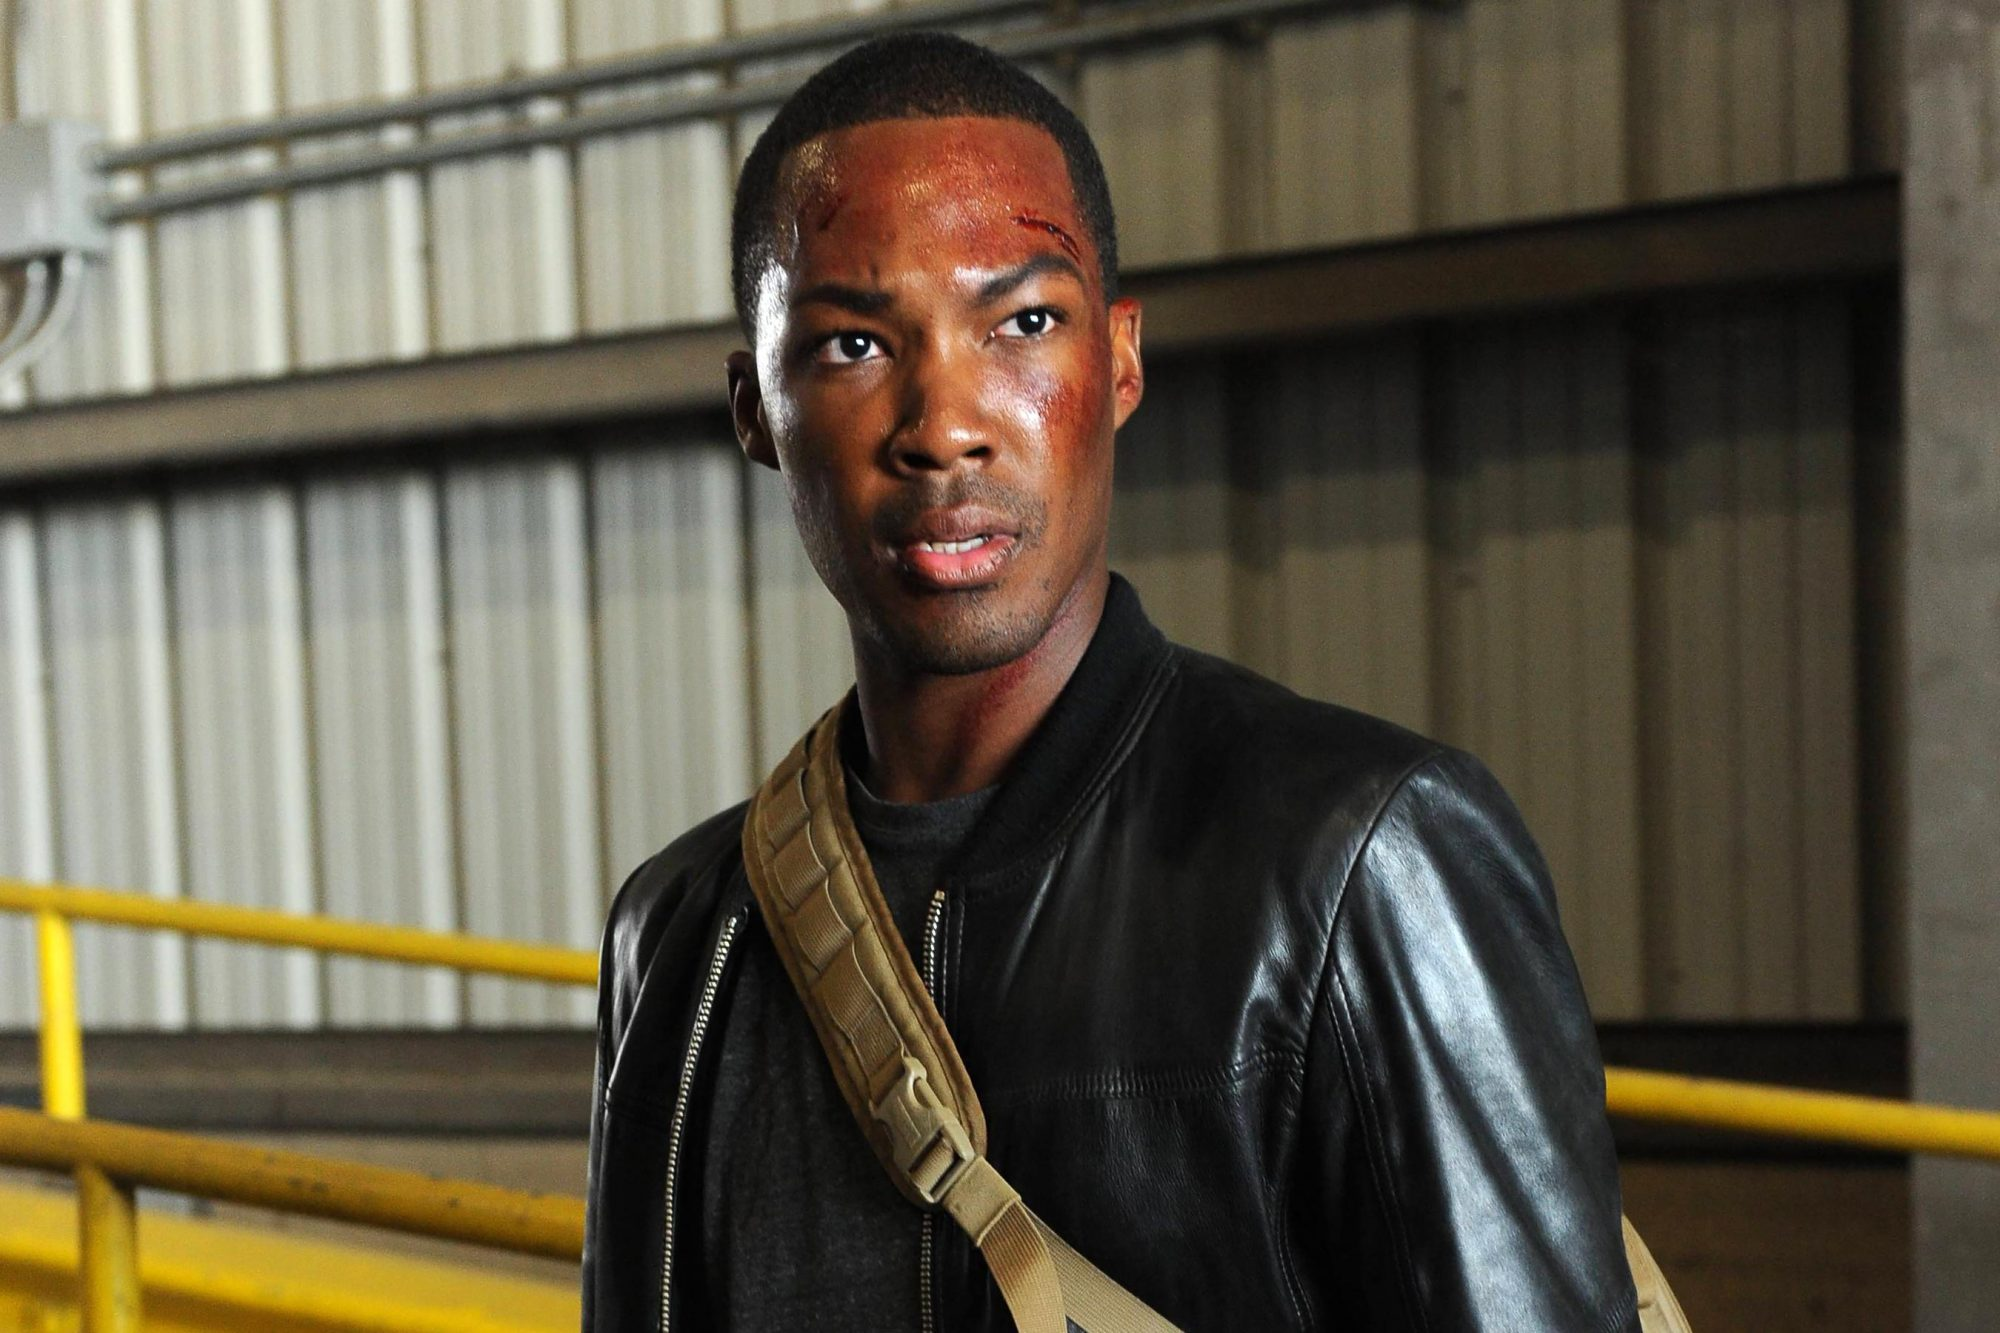 24legacy-ep101_sc86-rm_00378_hires2